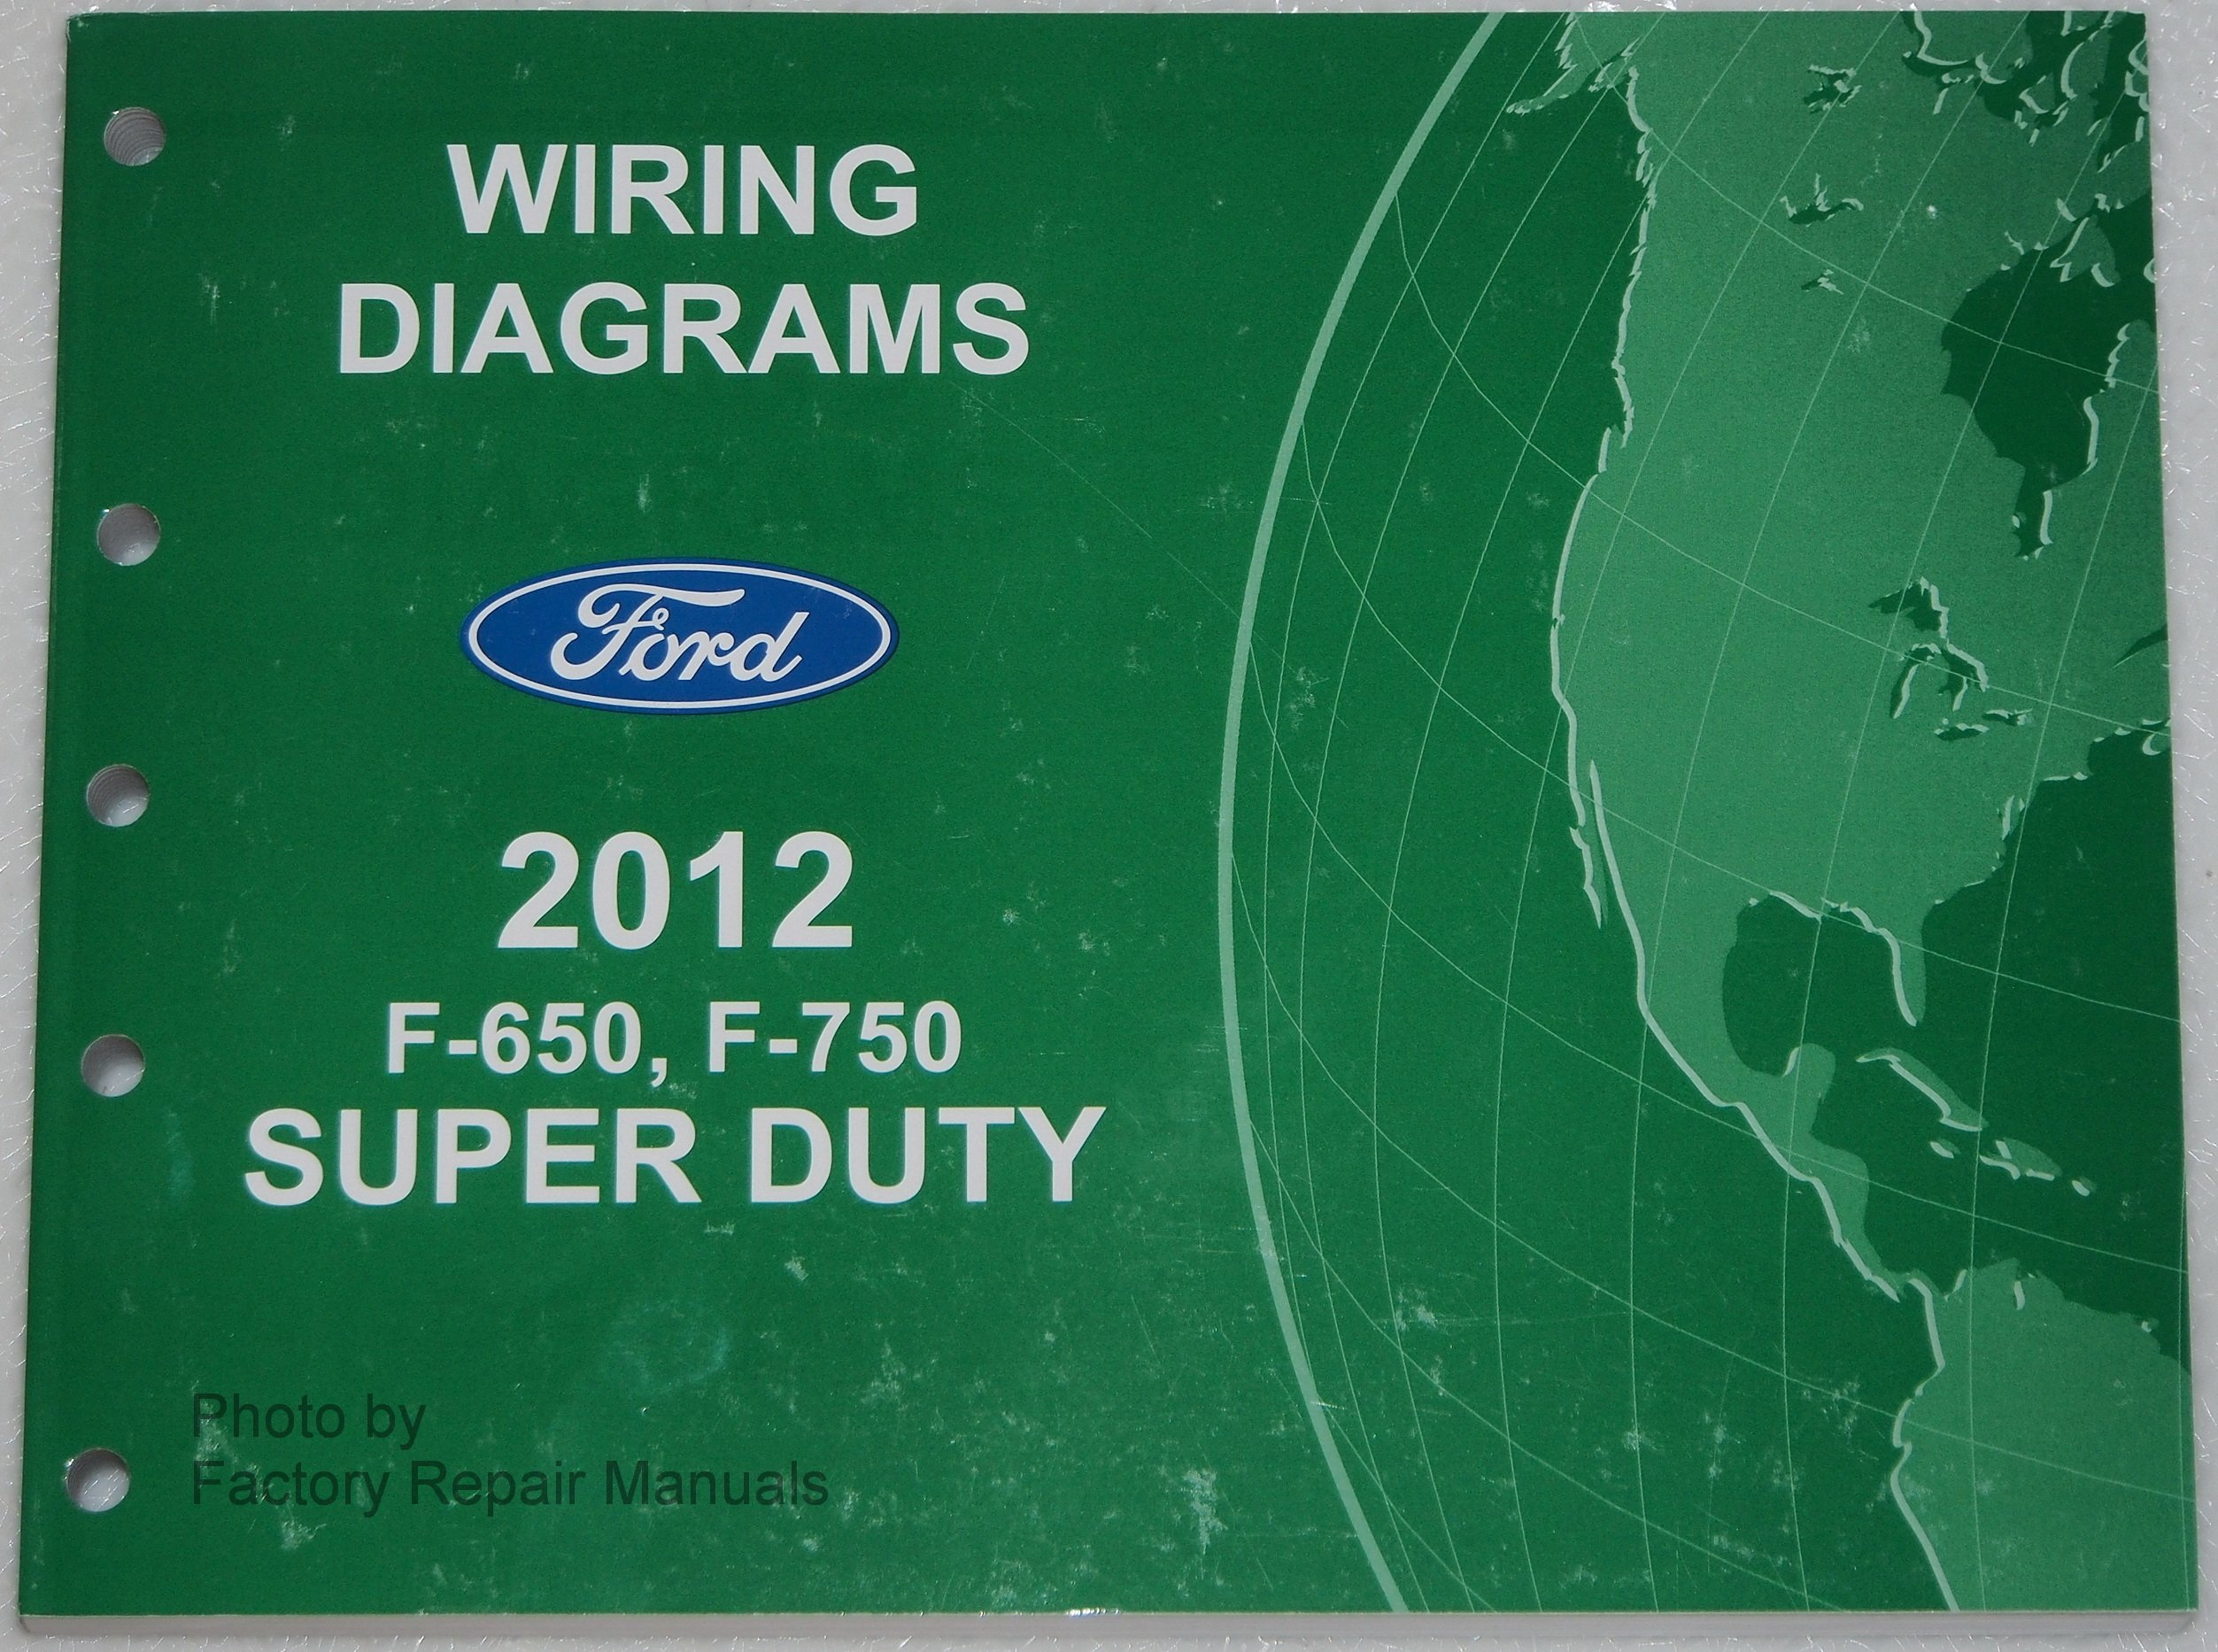 91KkFIScY%2BL 2012 f650 f750 wiring diagram ford motor company amazon com books 2013 ford wiring diagram at crackthecode.co